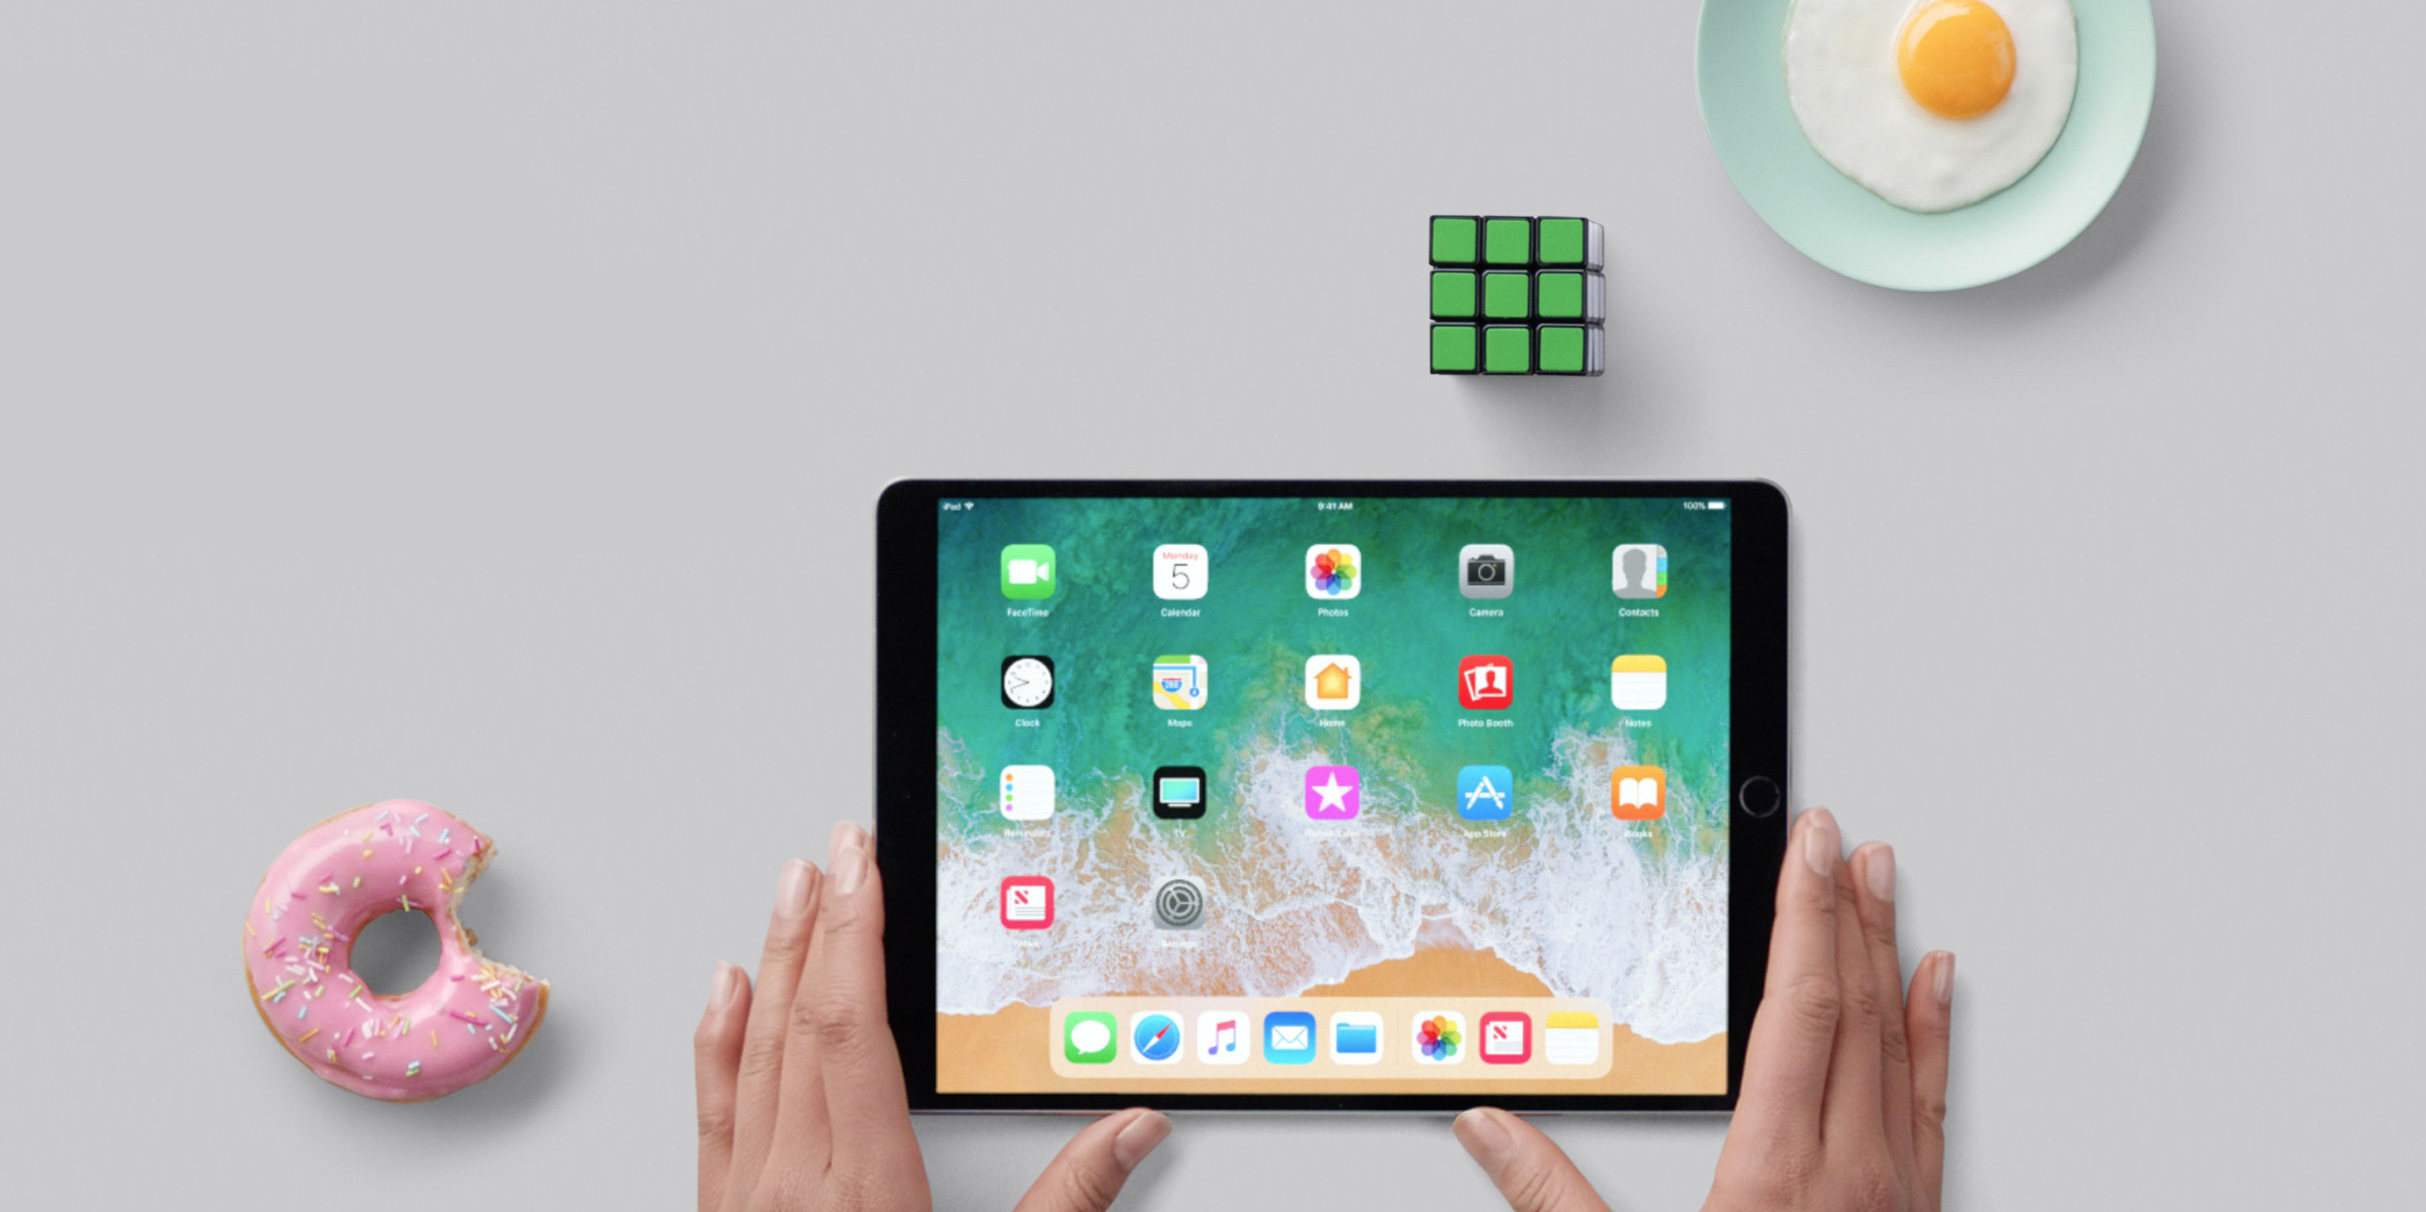 Apple's 10.5-inch iPad Pro is up to $450 off including cellular models, today only